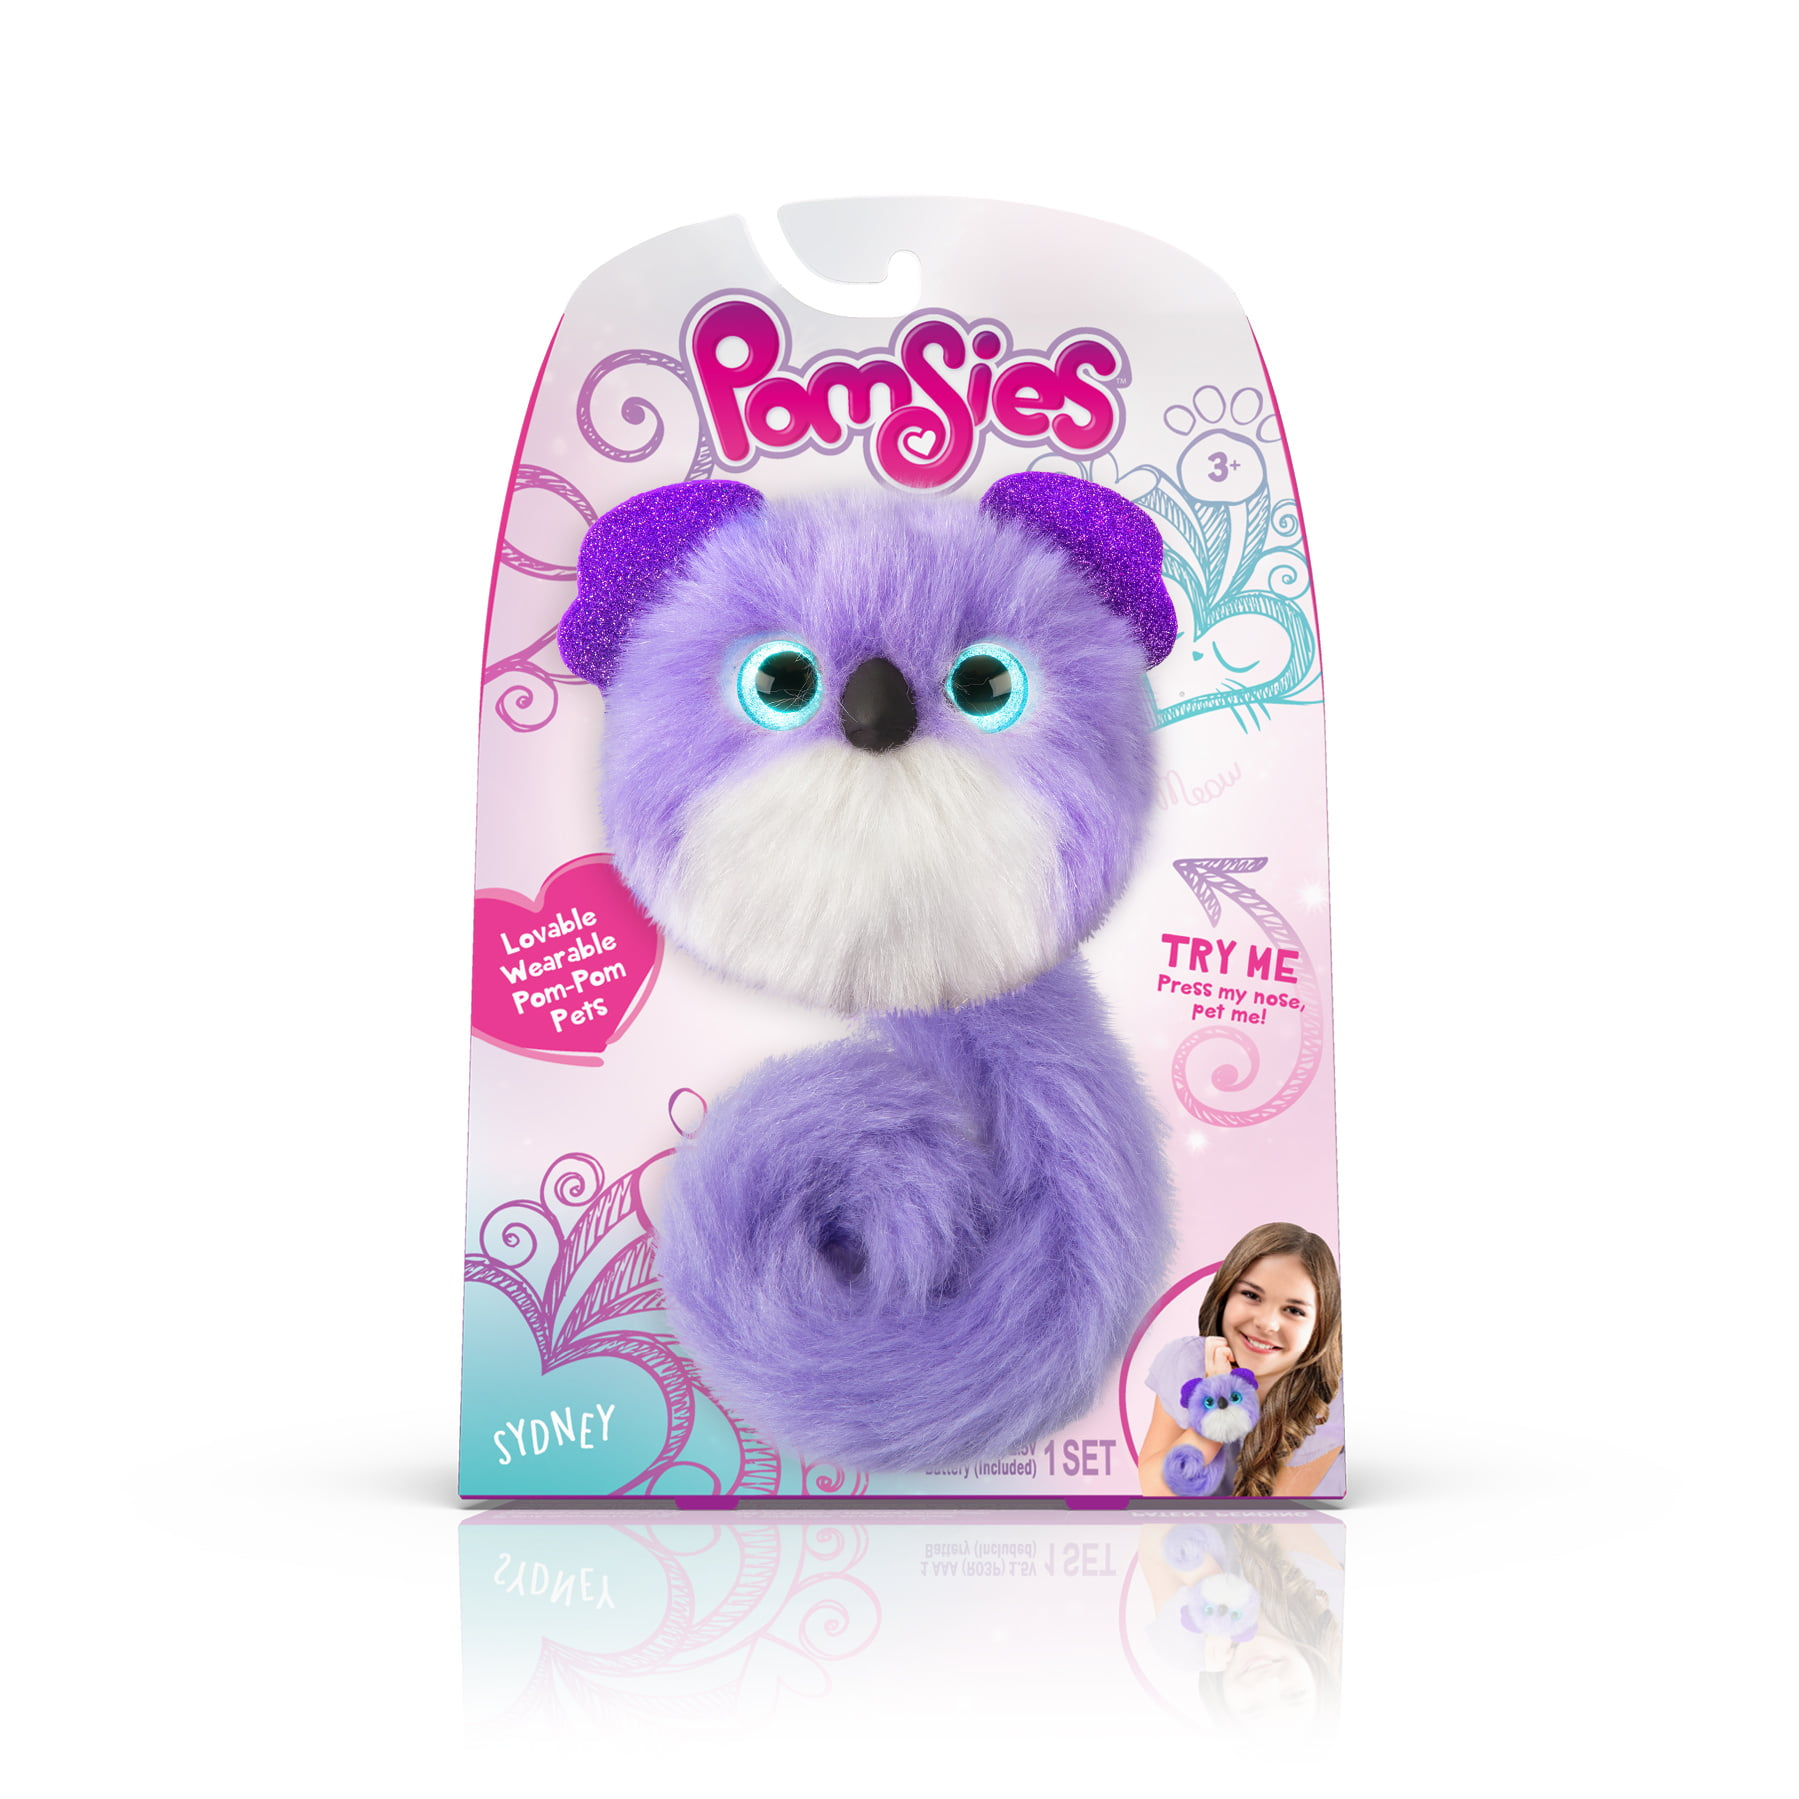 Pomsies Pet Koala Sydney- Plush Interactive Toy